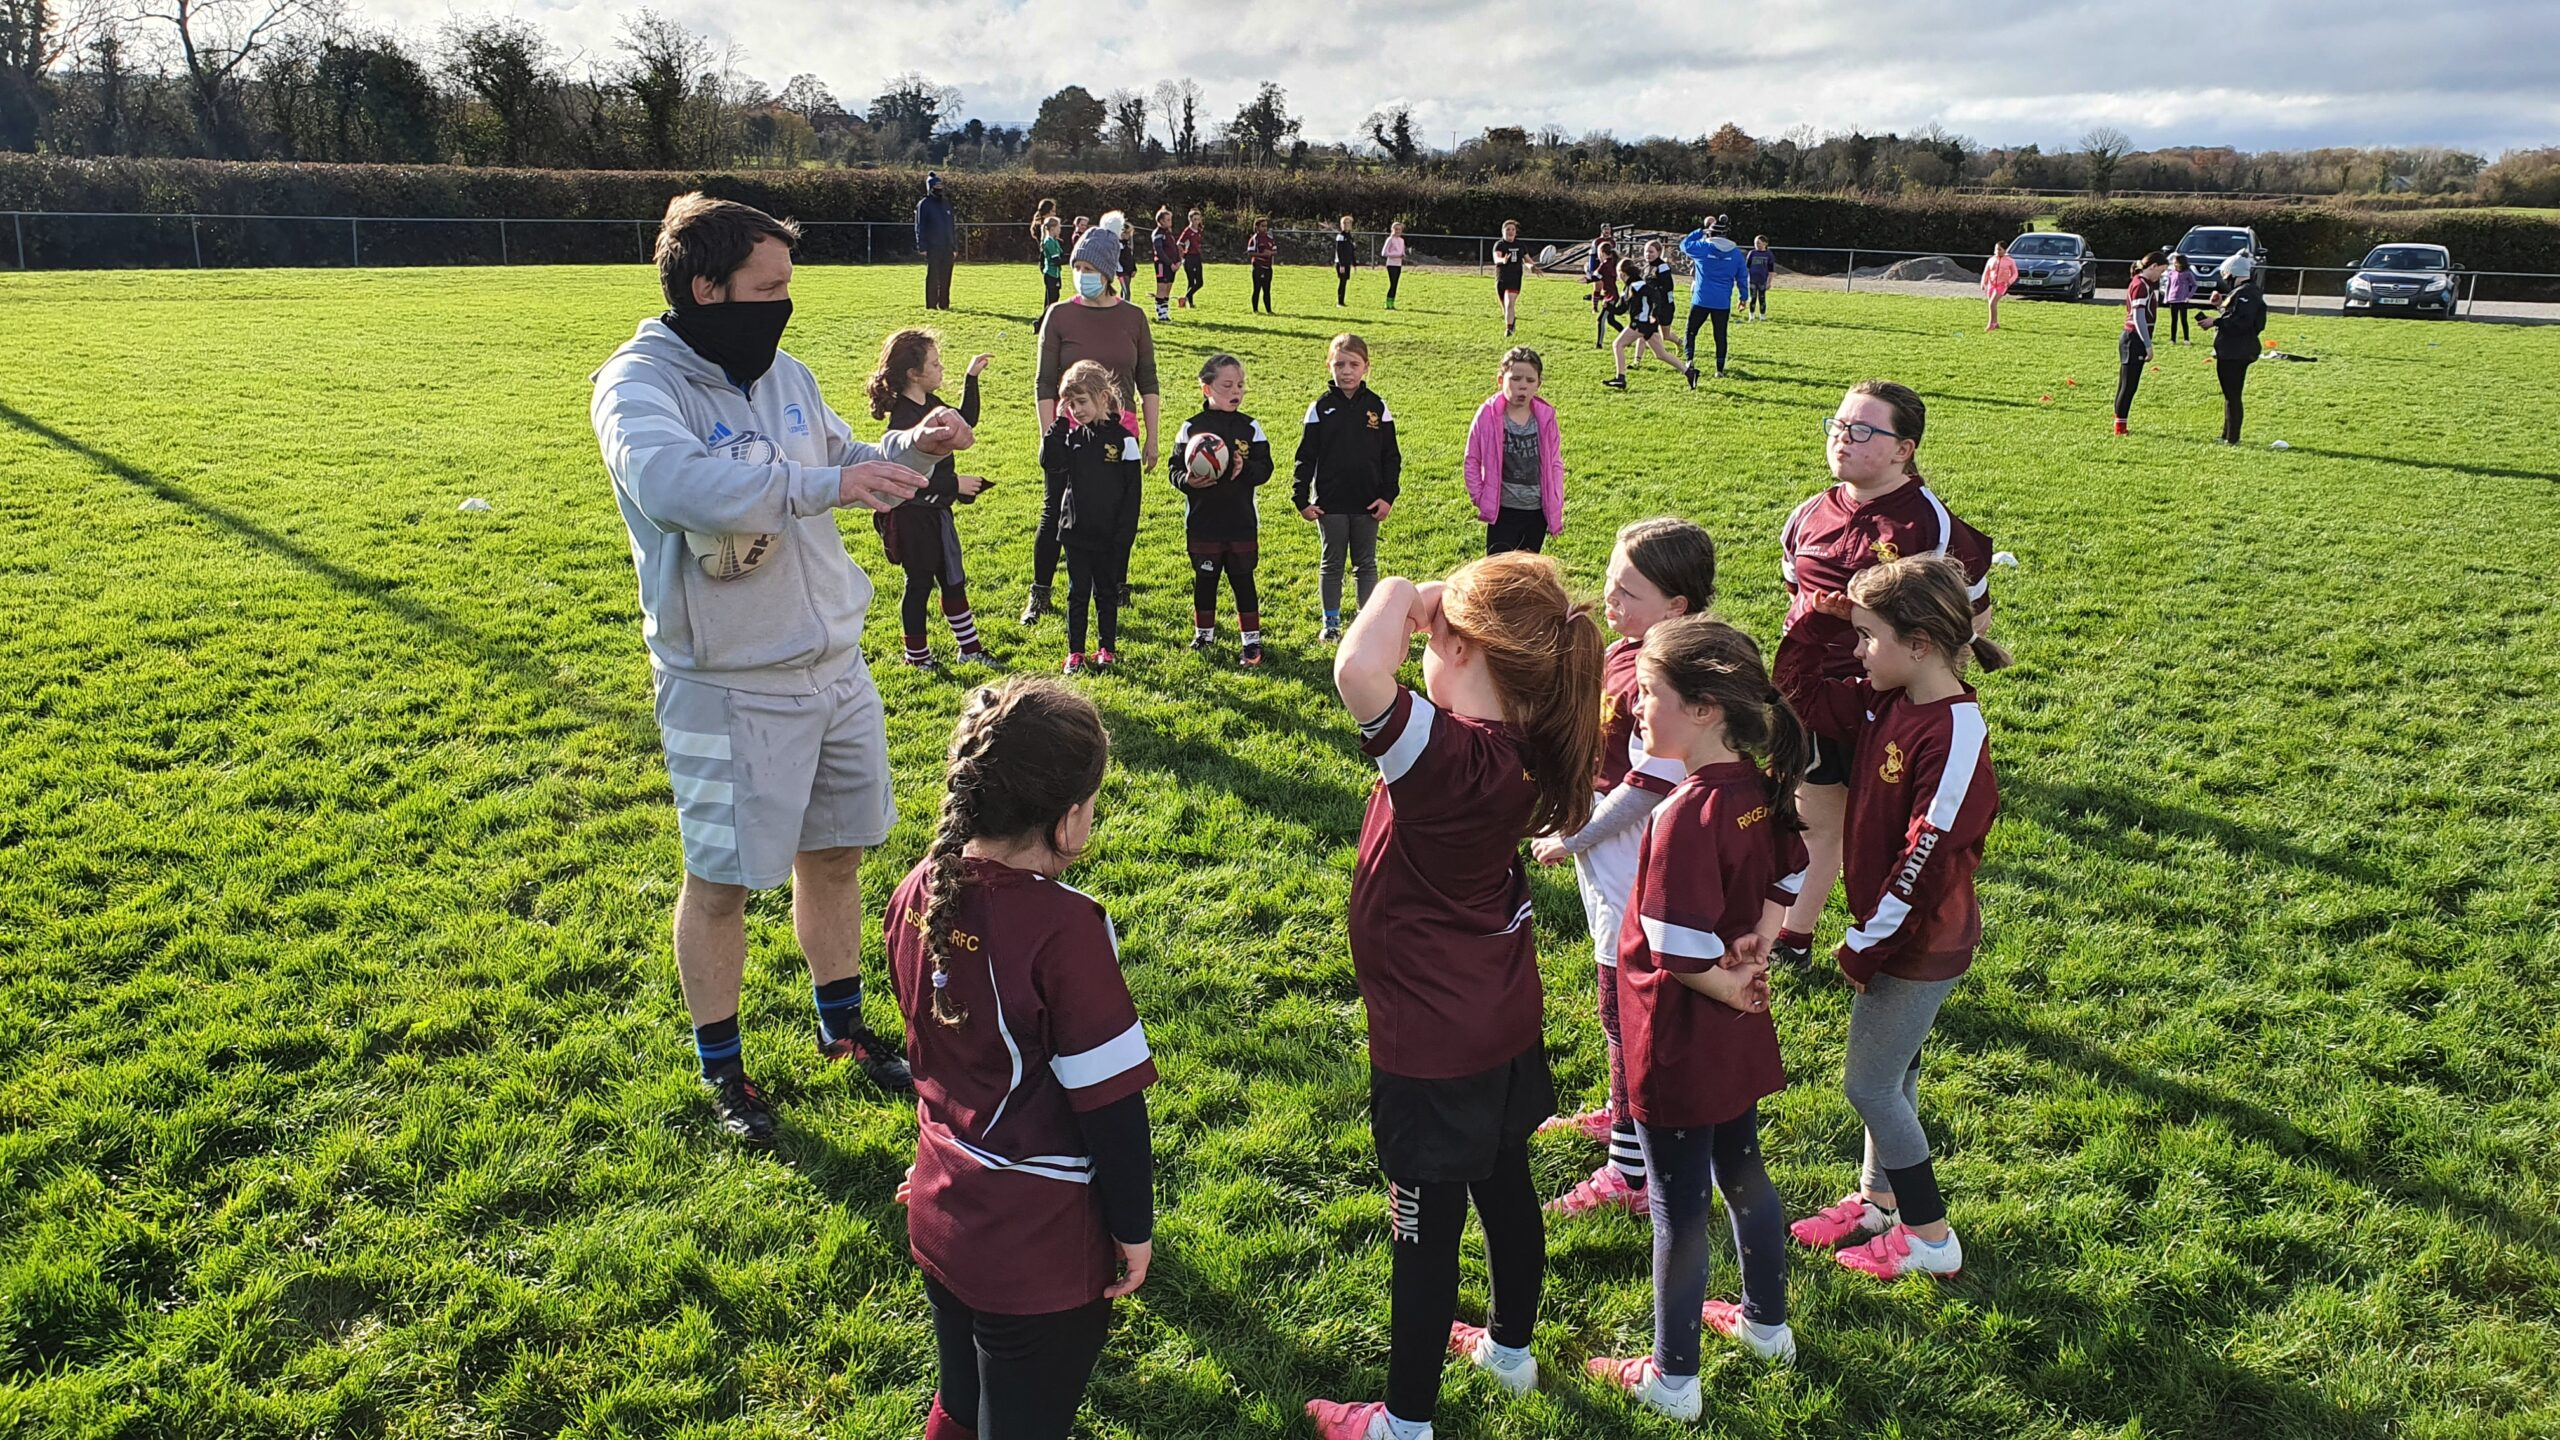 Boys and Girls Minis Rugby becoming increasingly popular.